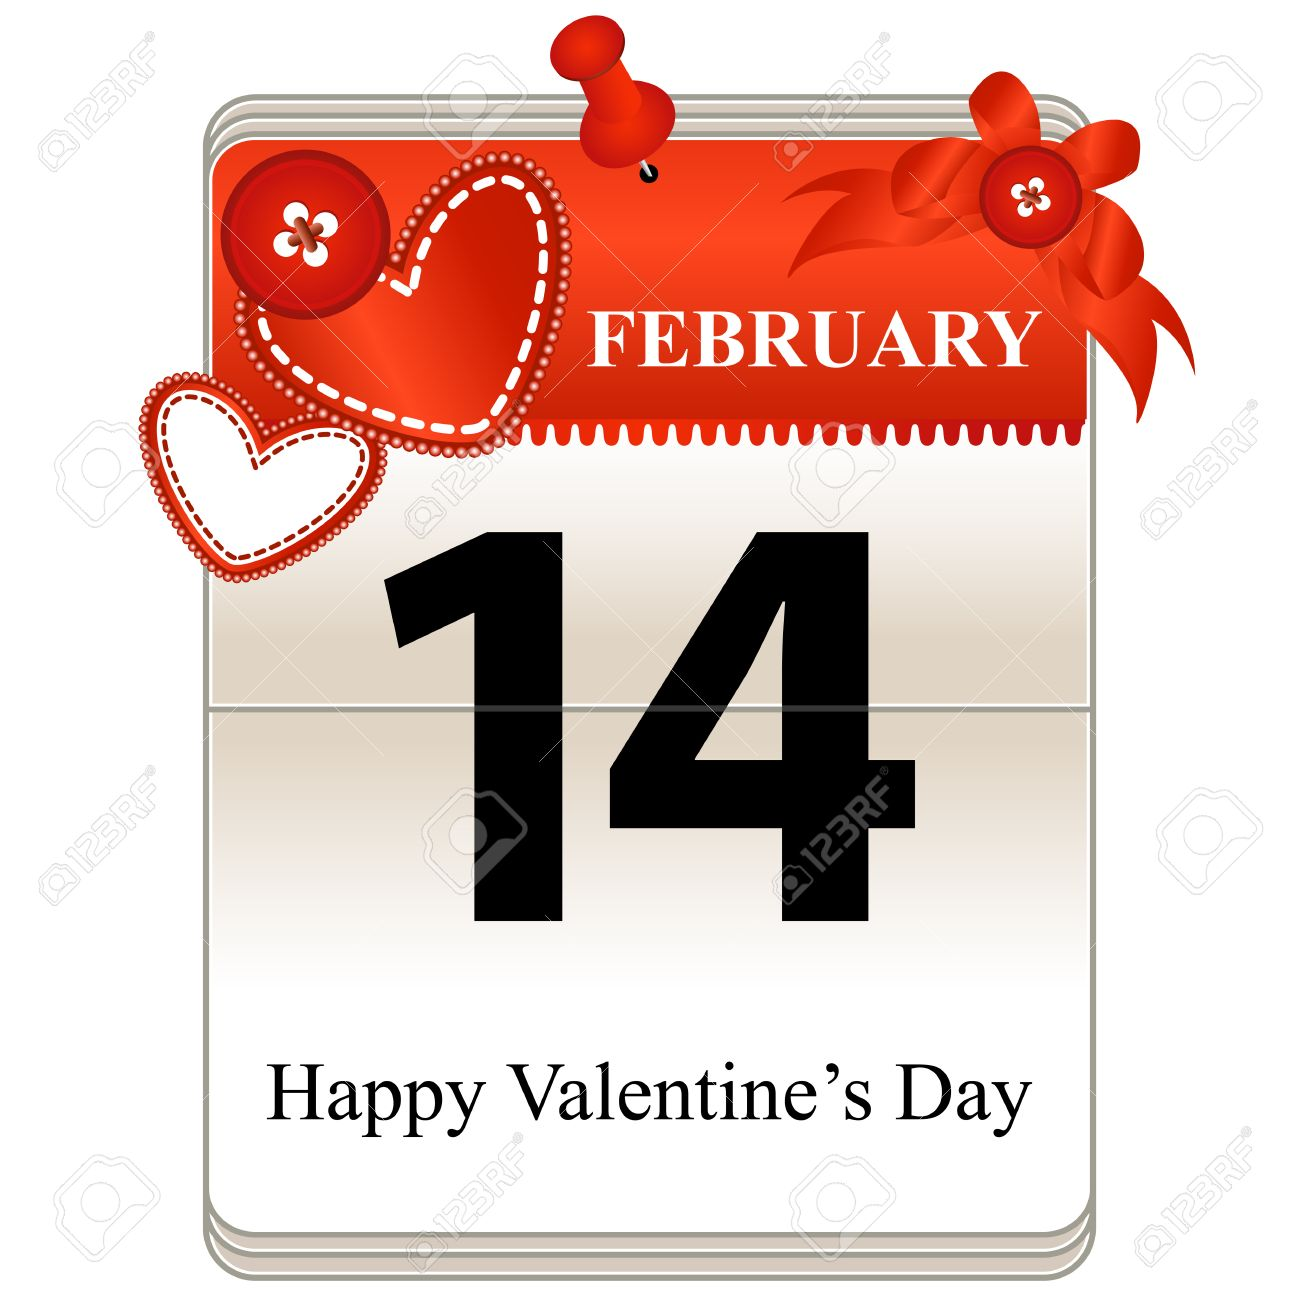 Vector Of The Date Valentines Day Calendar, 14th Of February Stock Vector    24160367